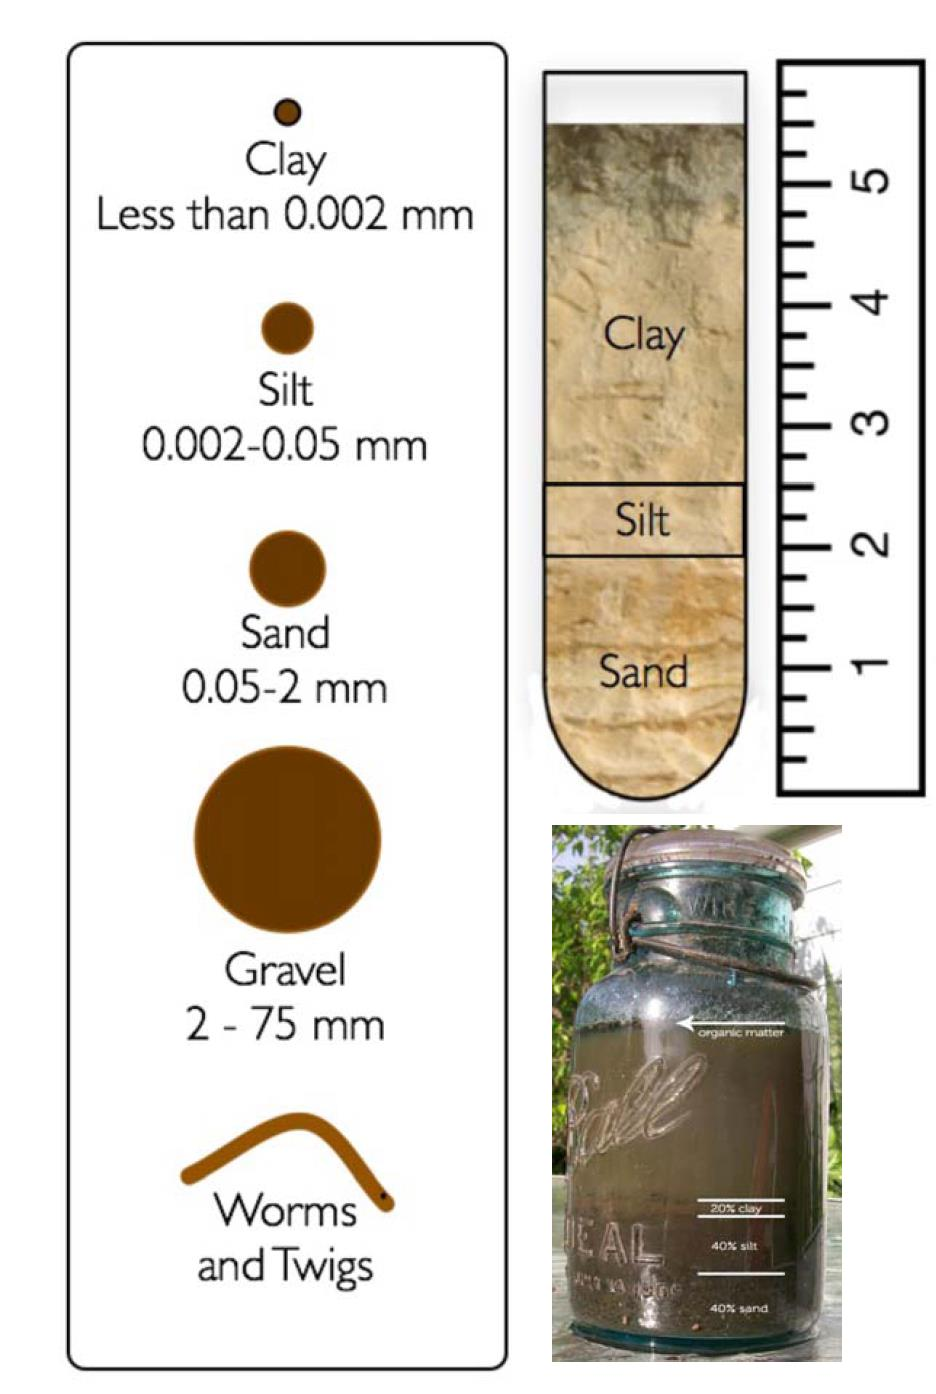 The ideal texture for crops is a Medium Loam, about 20% Clay, 40% Silt and 40% Sand as shown in the Mason (1 qt.) jar above.